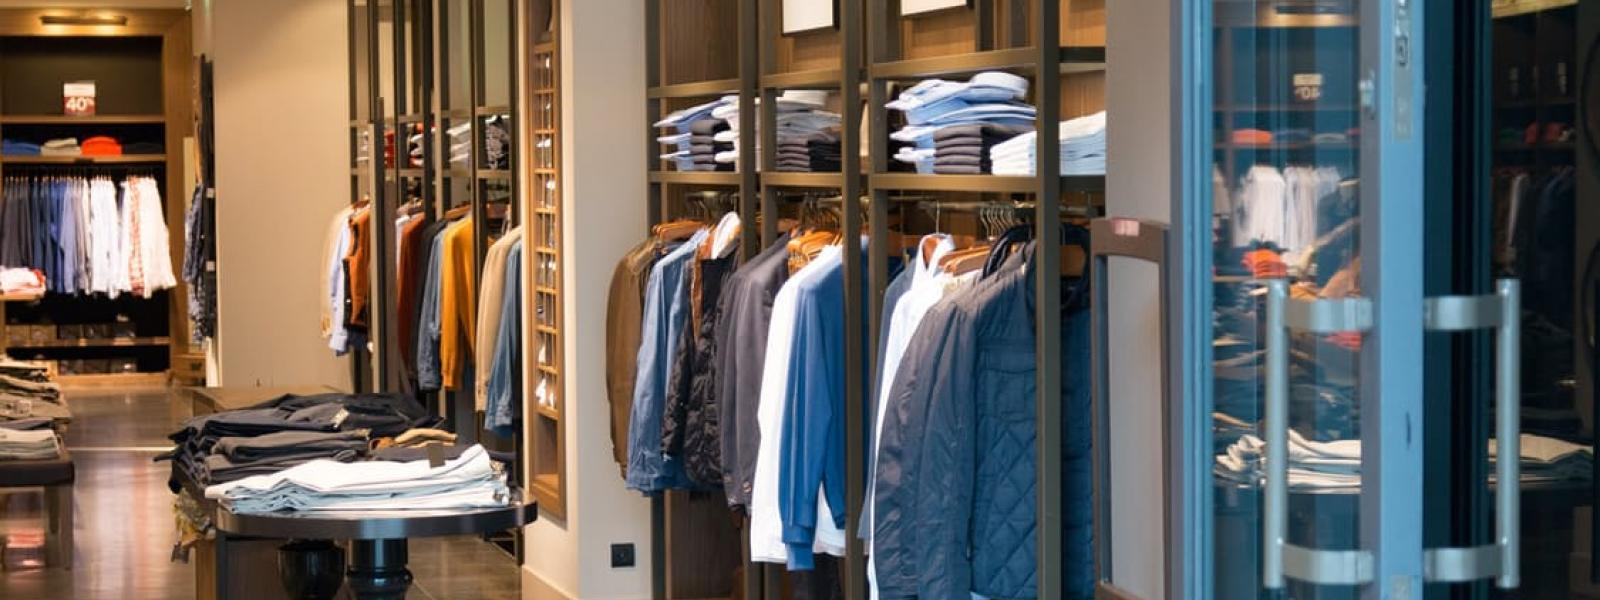 managing stock inside store - improve speed and accuracy, reliability